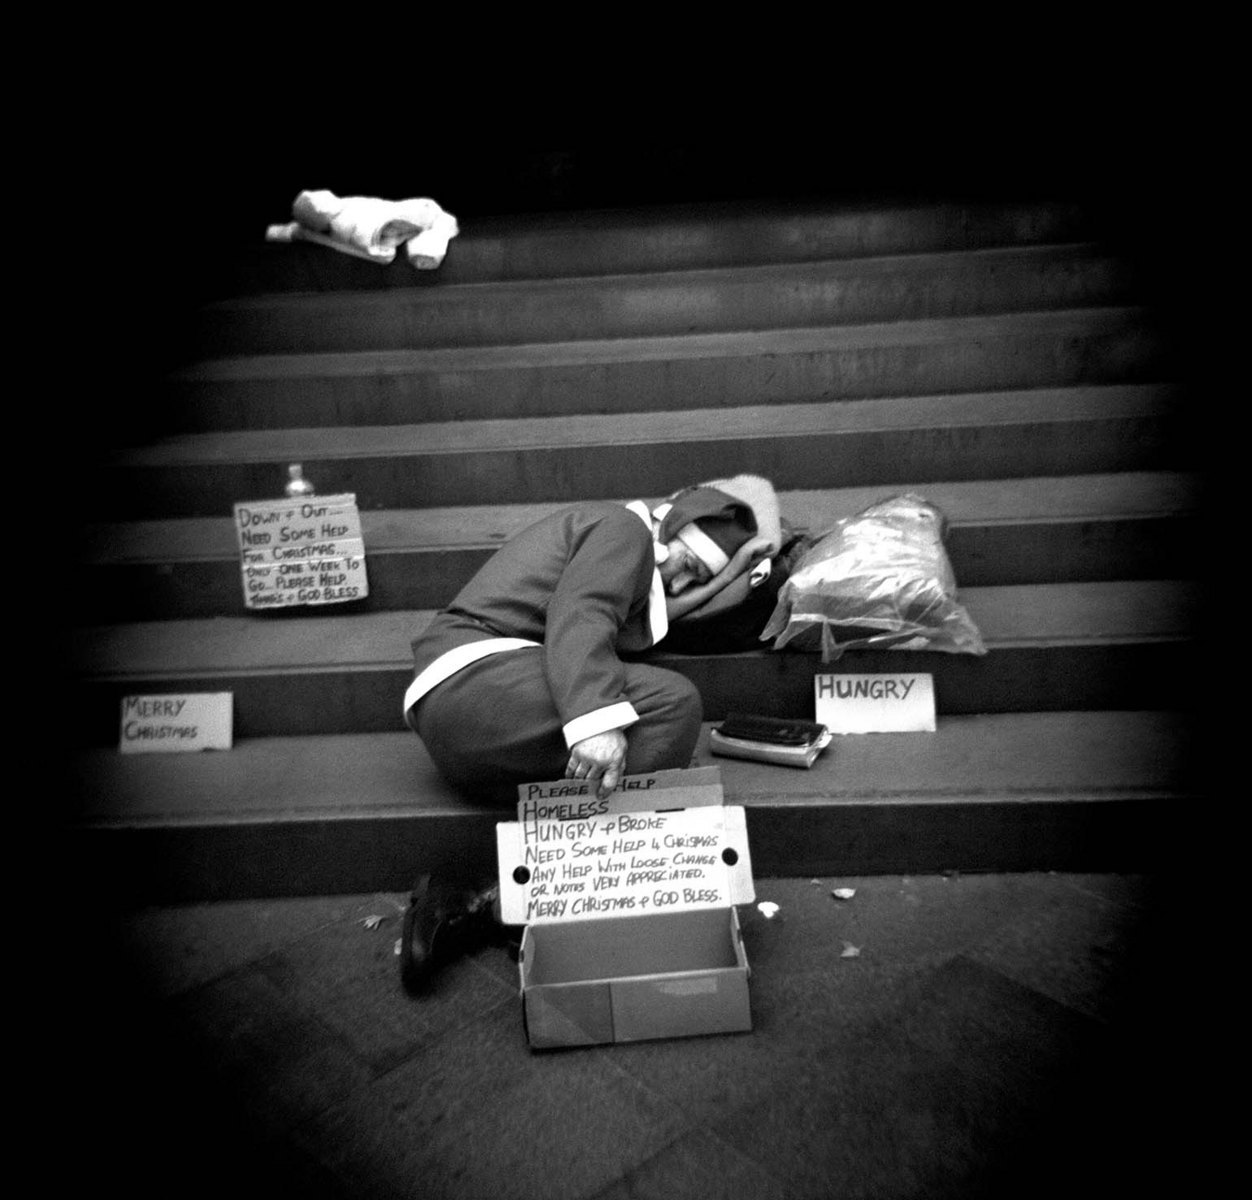 Real Life is like a theatre when you wander the same streets everyday. The scenes change in the blink of an eye as reality blends with my memories and dreams.